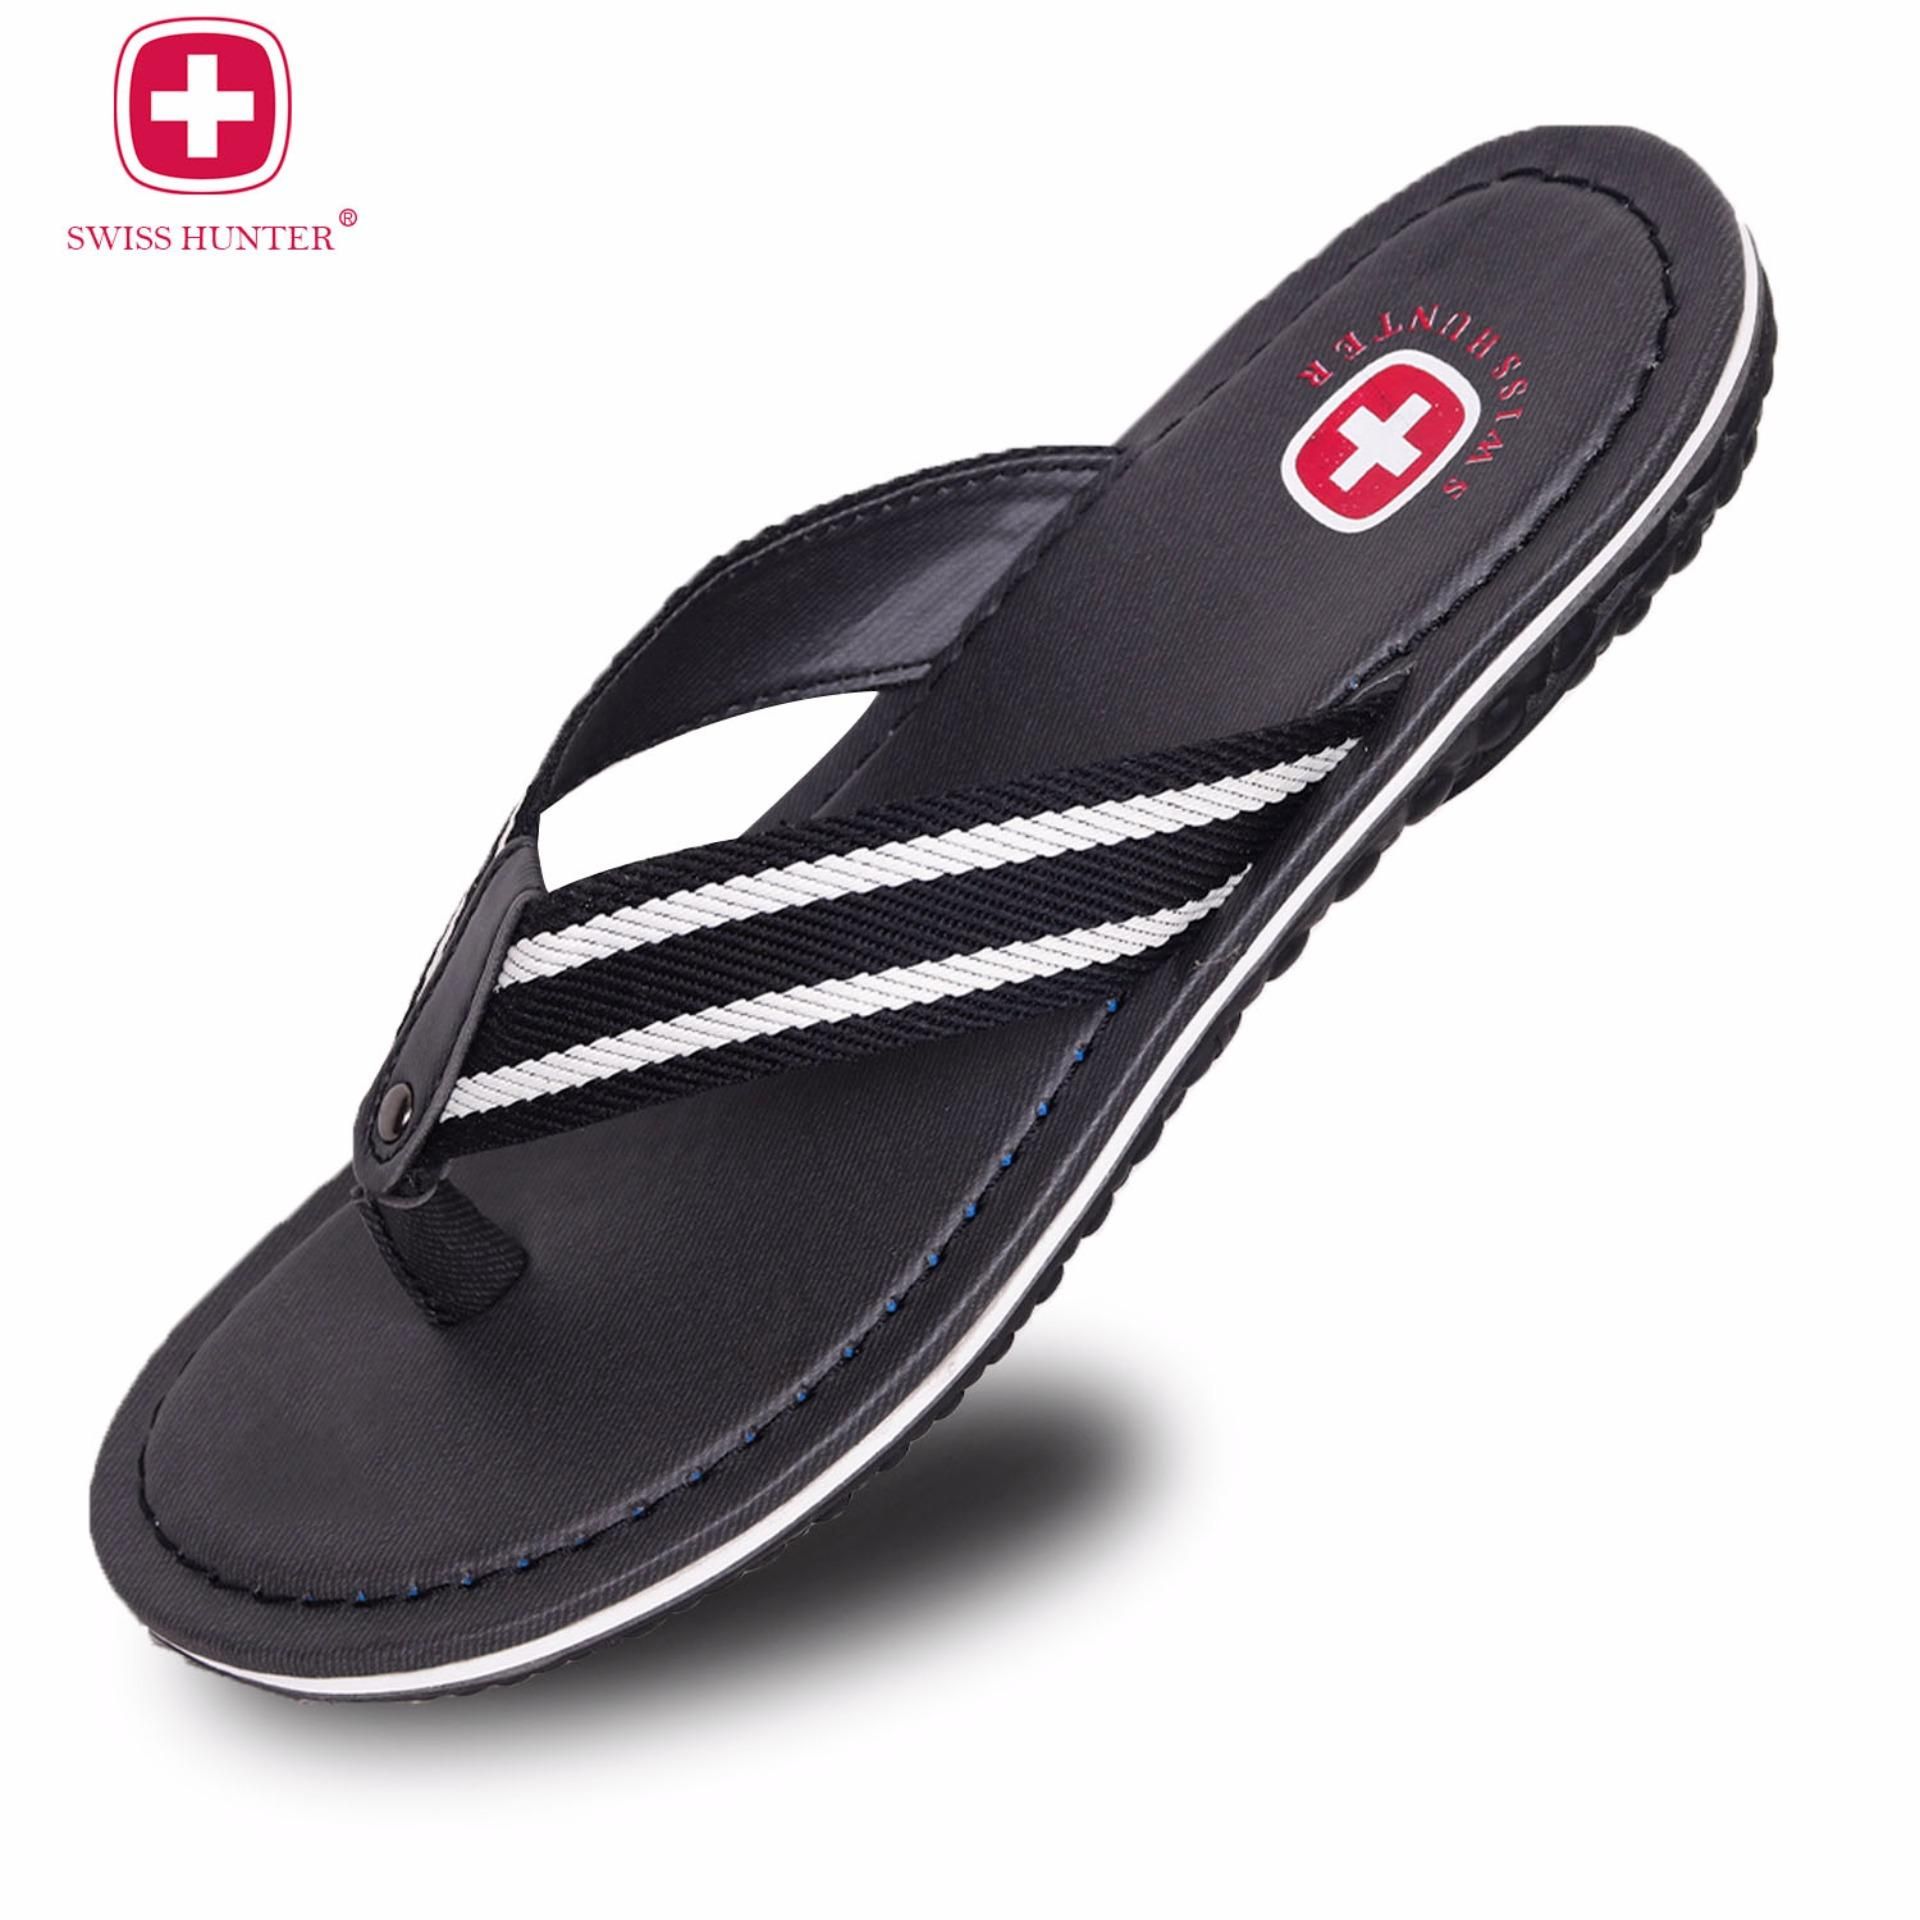 Swiss Hunter Russel Sandal Pria Black Murah